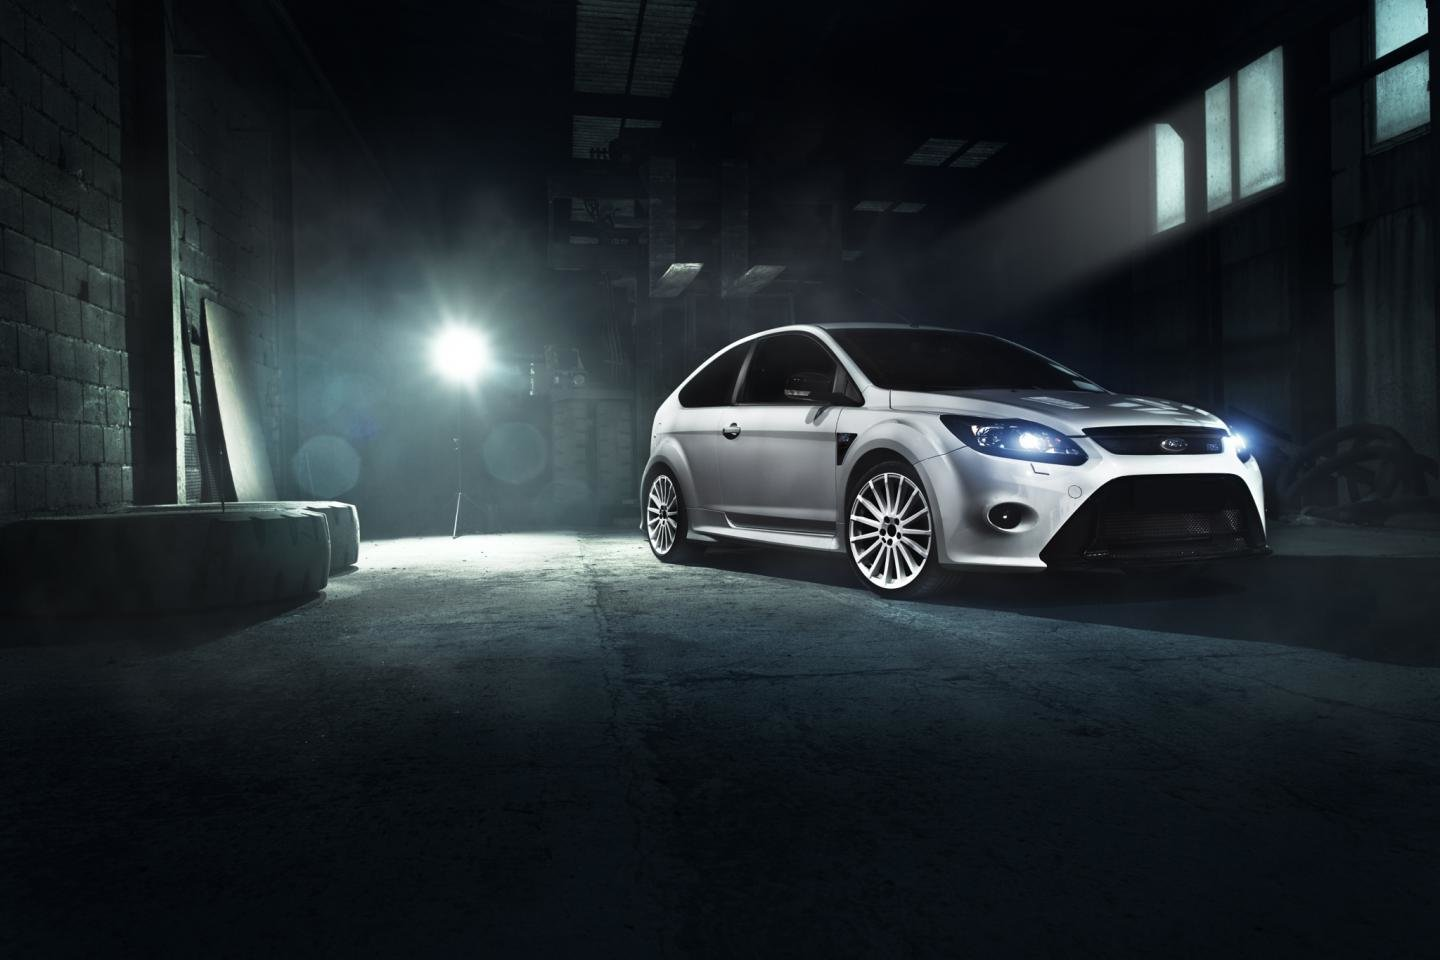 High Resolution Ford Focus Rs Hd 1440x960 Wallpaper Id63002